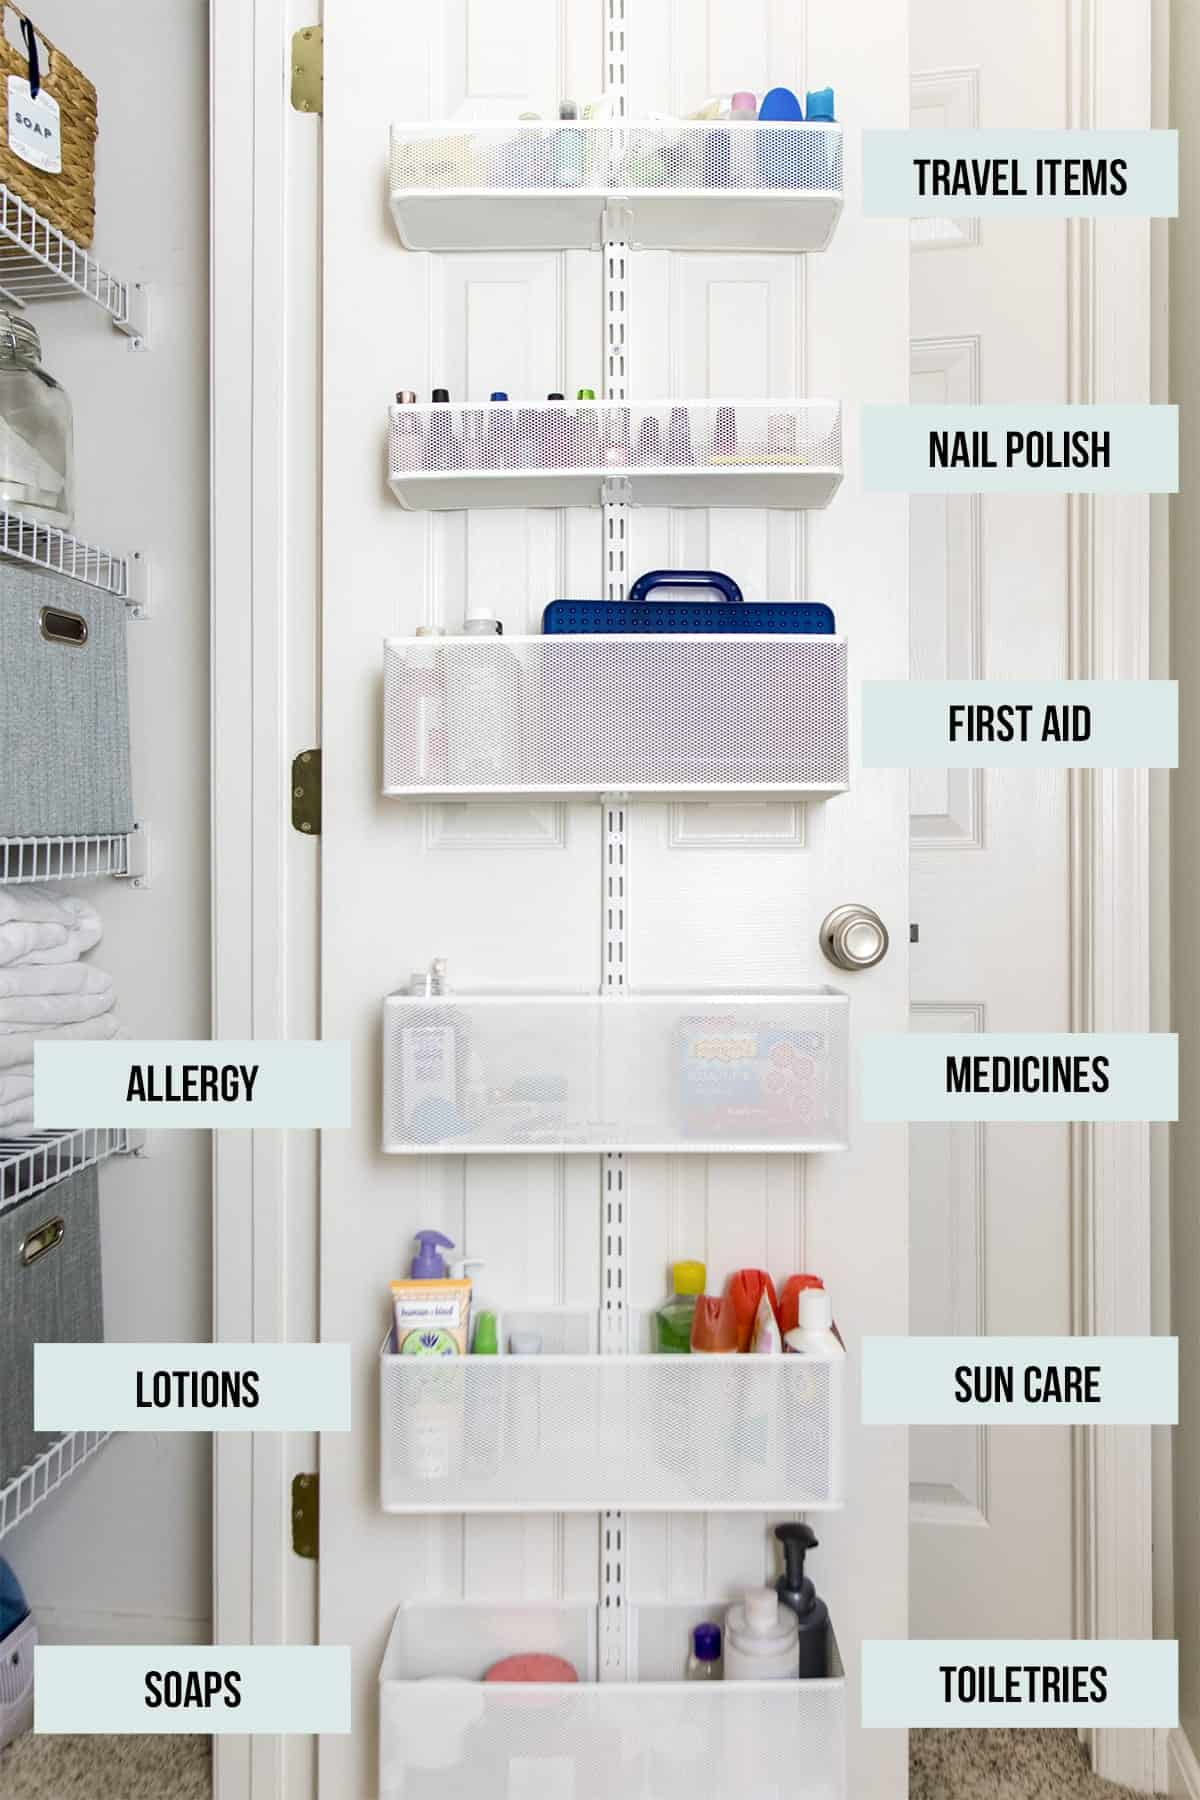 Elfa Linen Closet Door Organizer with the toiletries labeled in a linen closet.